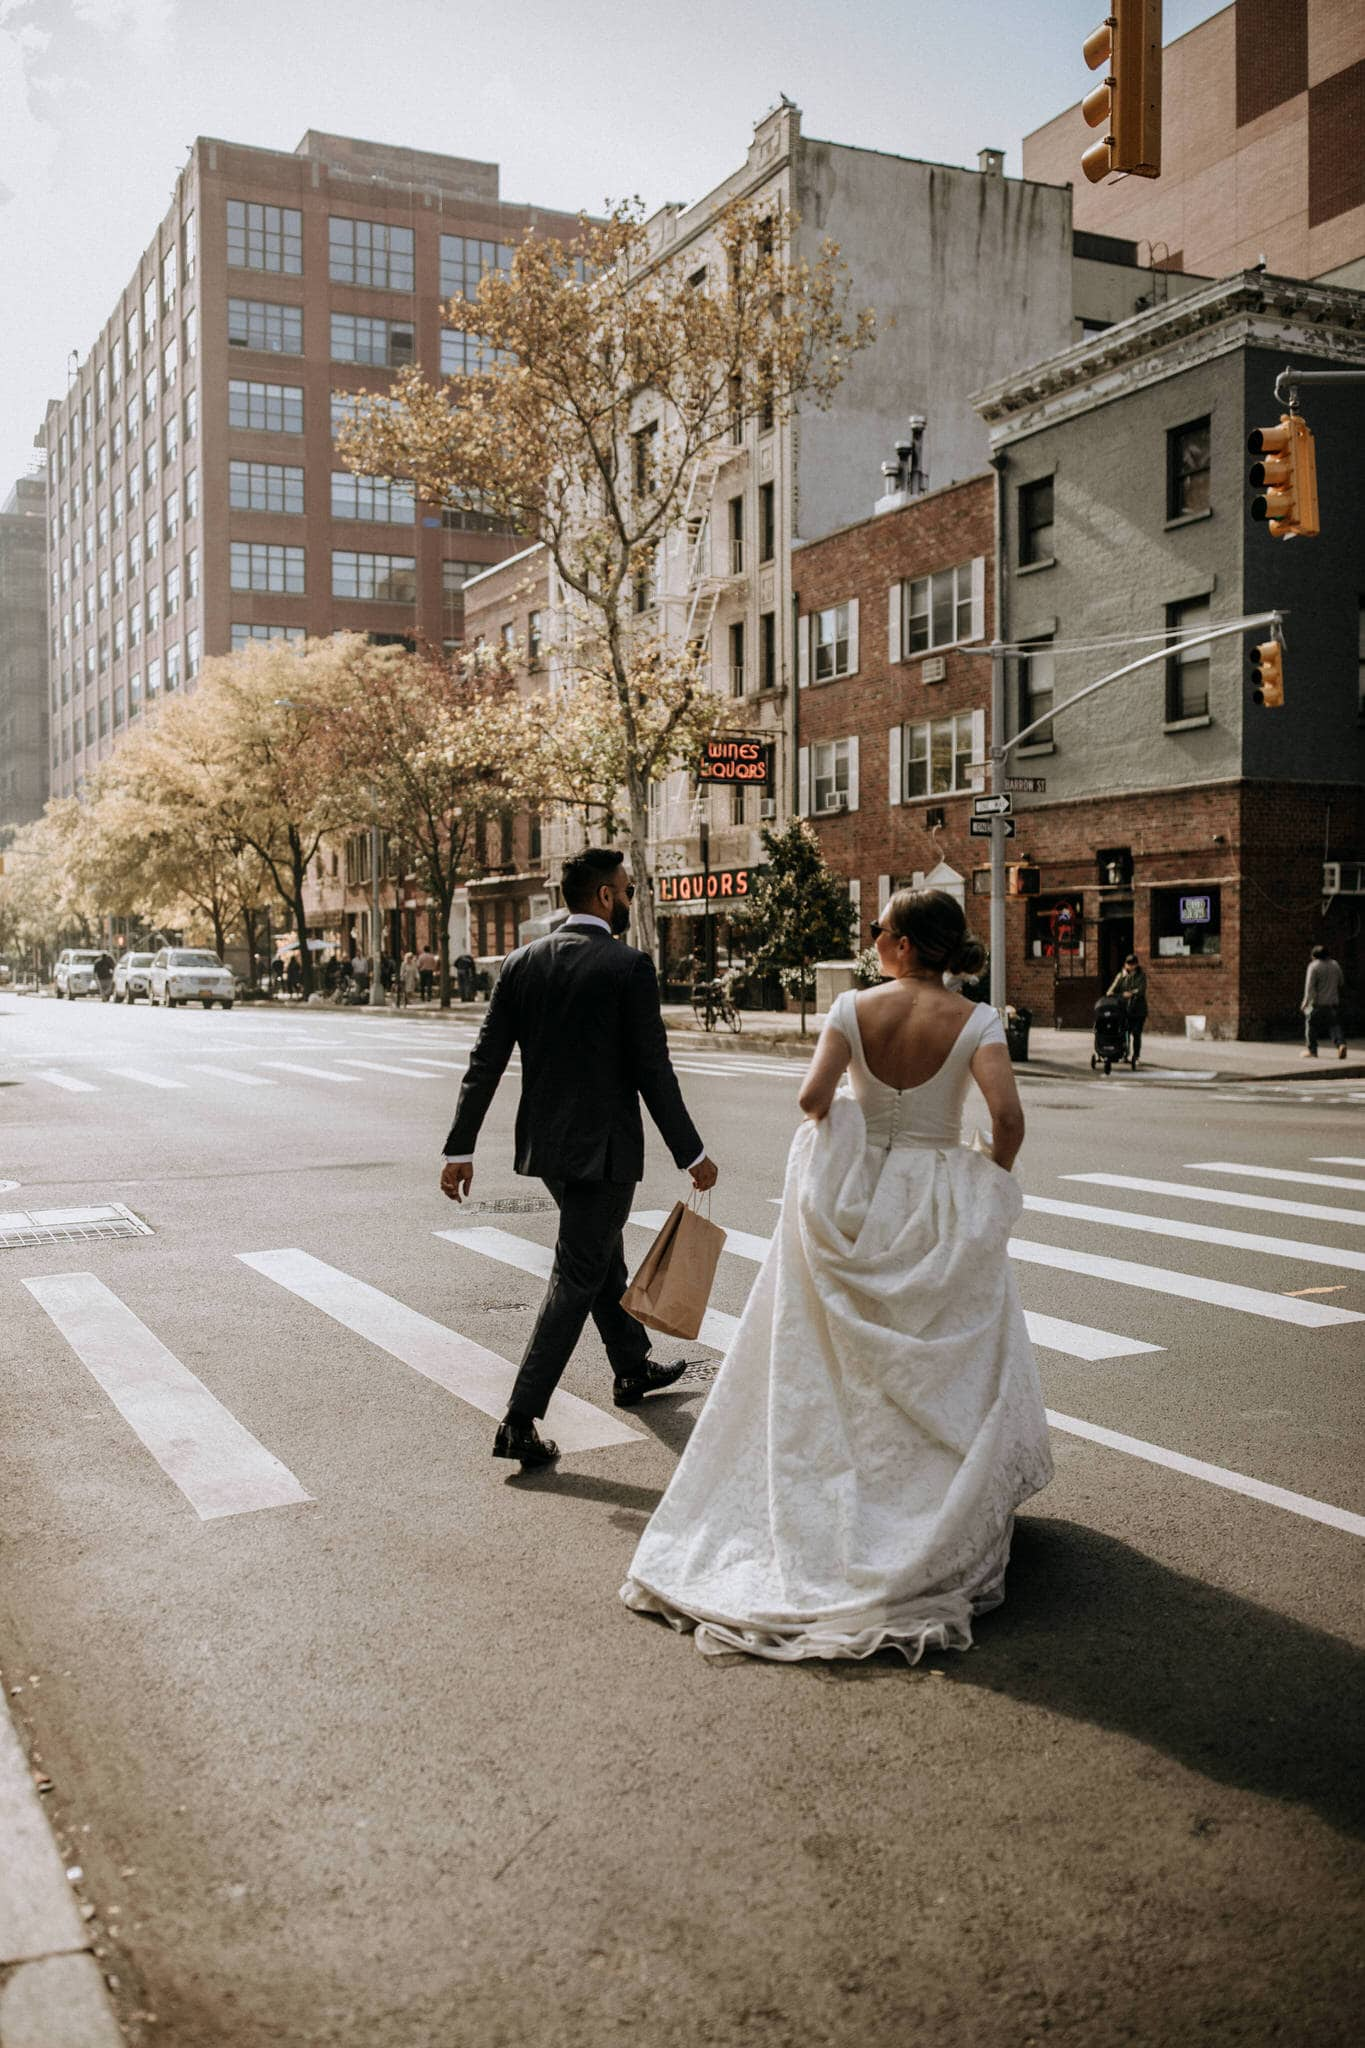 The bride and groom cross the steet on their walk through the streets of New York. Wedding Photographer Brent Calis.